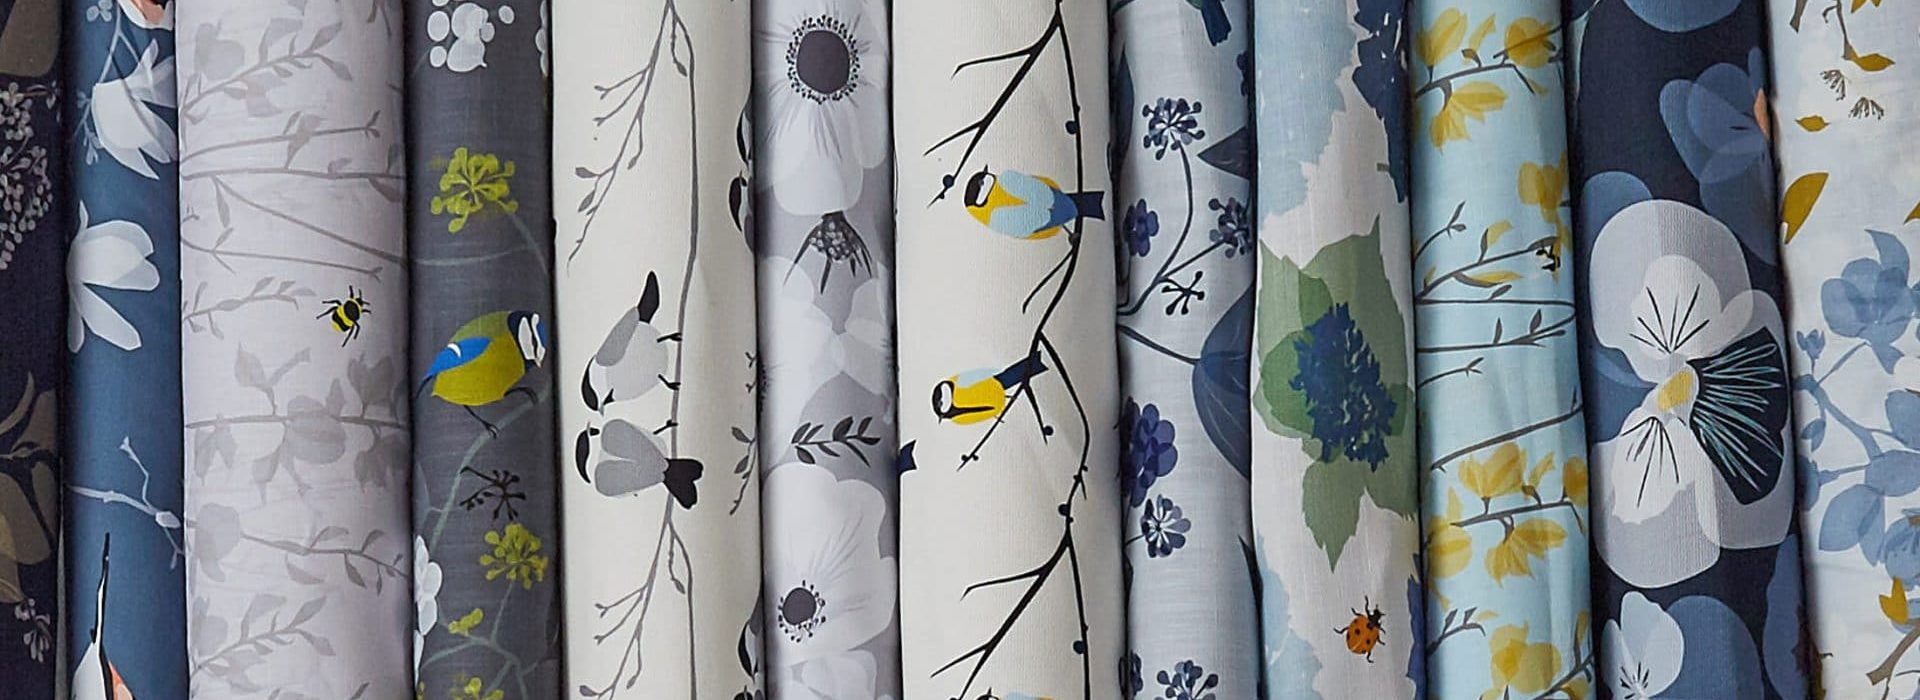 bird fabric and floral fabric by designer Lorna Syson